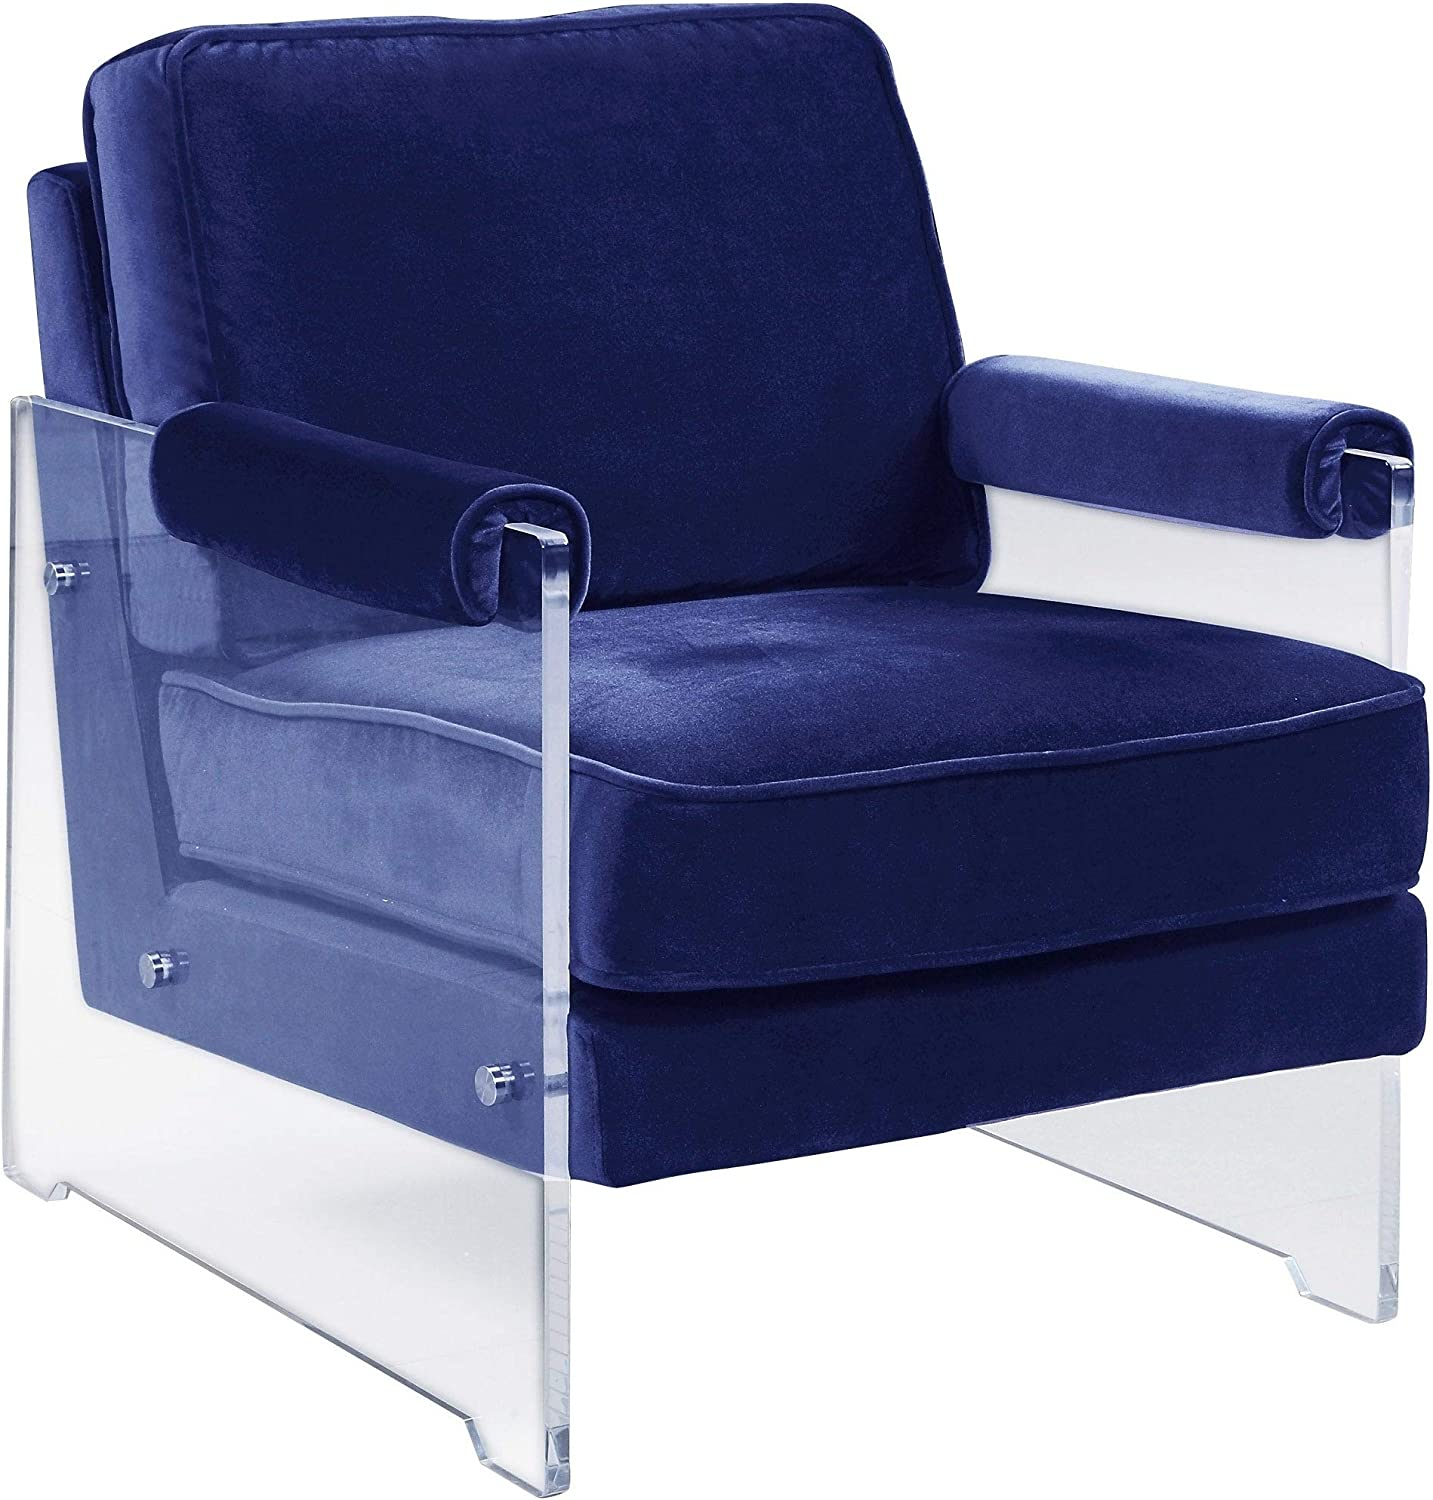 Chic Home Emman Modern Clear Acrylic and Velvet Accent Chair Navy